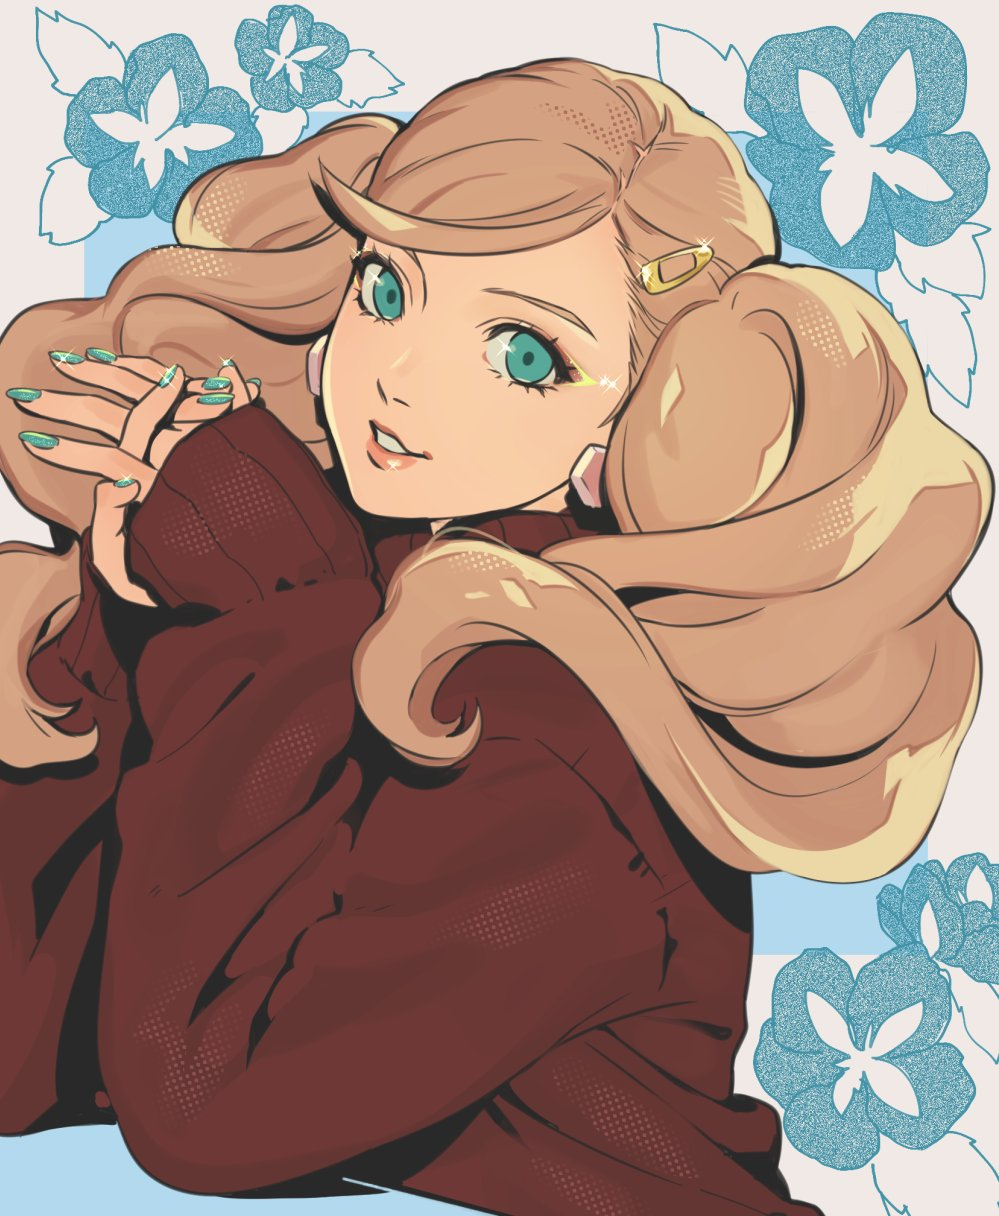 1girl aqua_eyes aqua_nails blonde_hair earrings flower hair_ornament hairclip hands_together head_tilt highres jewelry long_hair looking_at_viewer neekosiah persona persona_5 red_sweater sleeves_past_wrists solo sweater takamaki_anne twintails upper_body